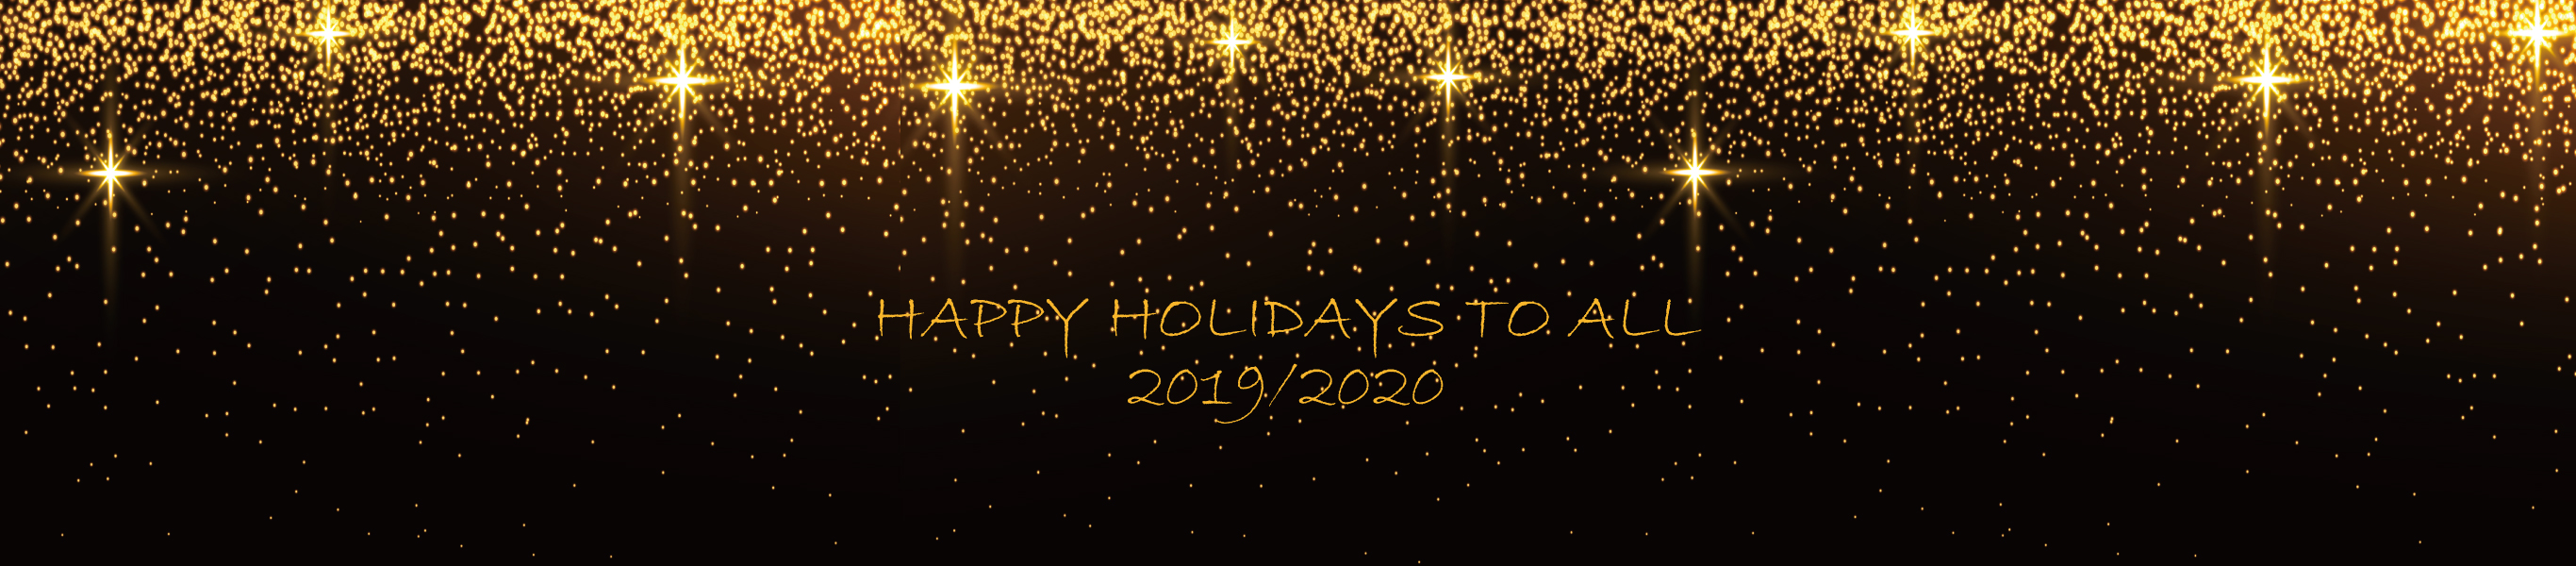 HAPPY HOLIDAYS TO ALL 2019-2020